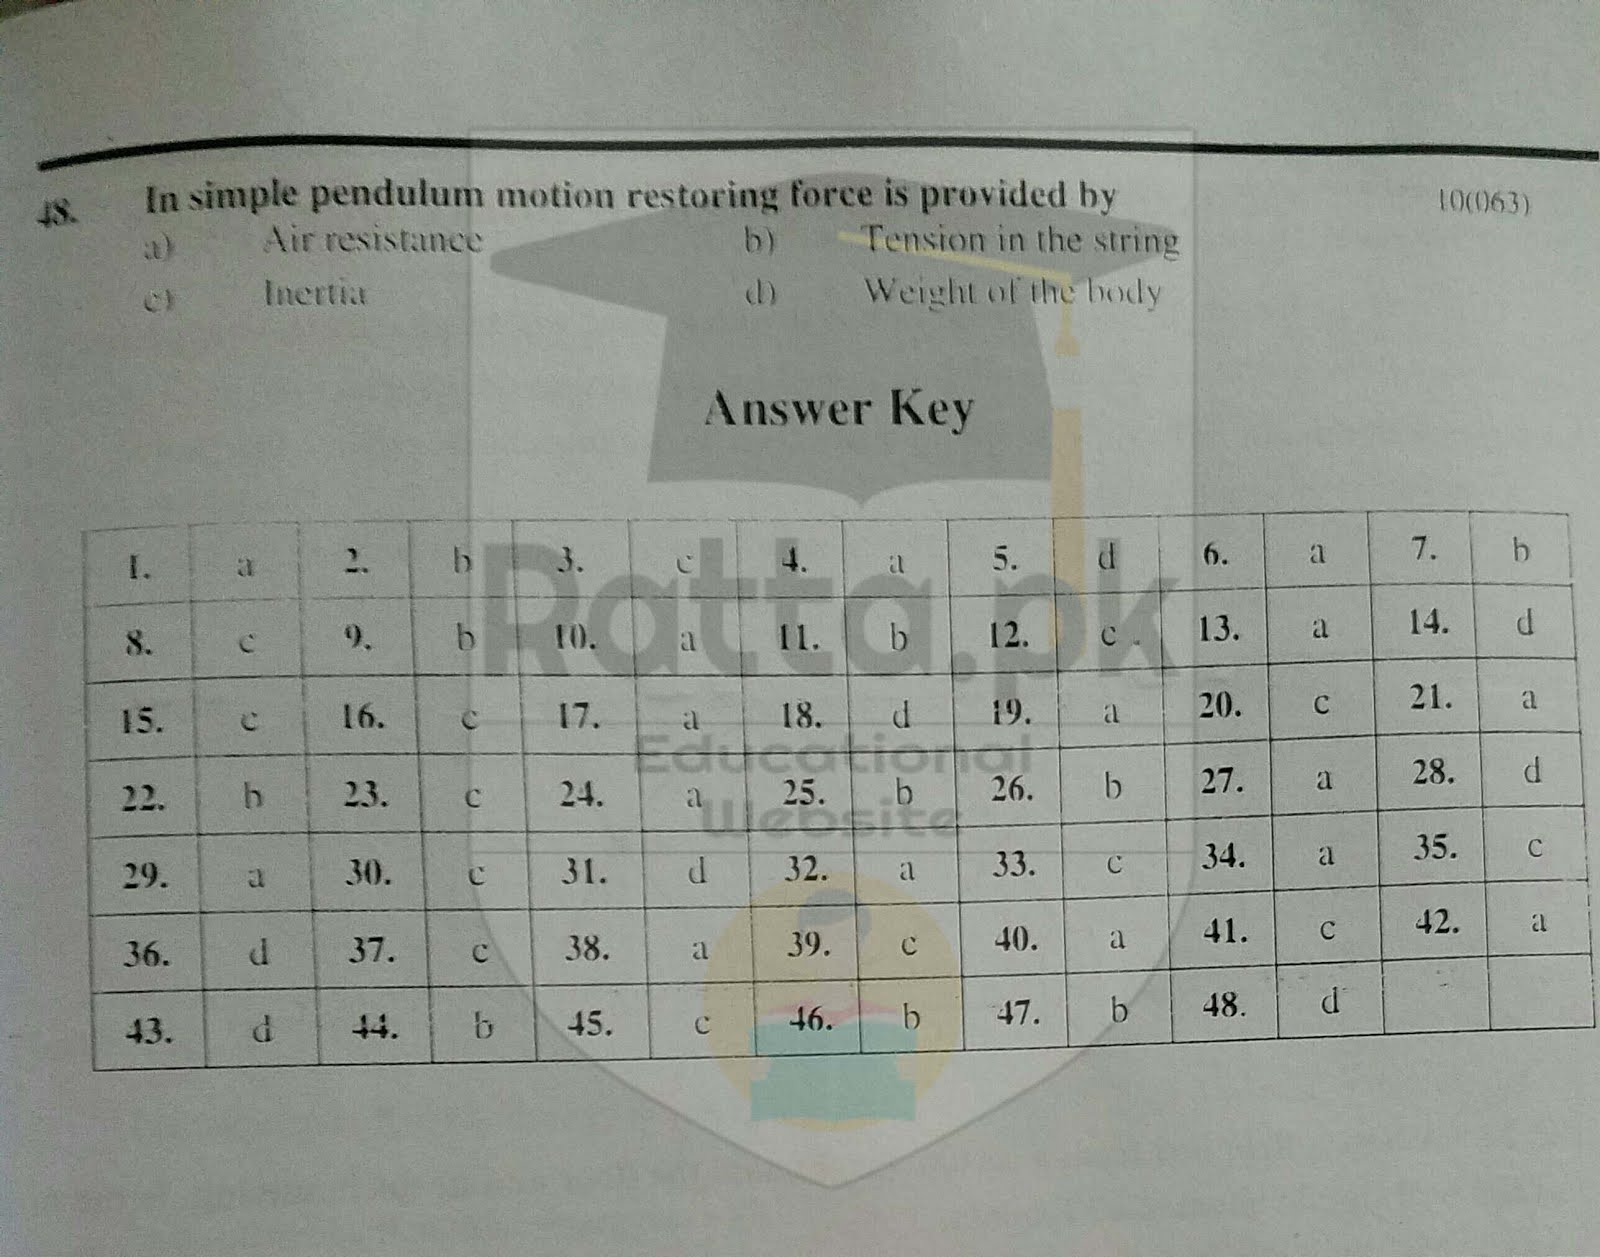 Matric 10th class Physics Chapter 1 solved MCQs answer key